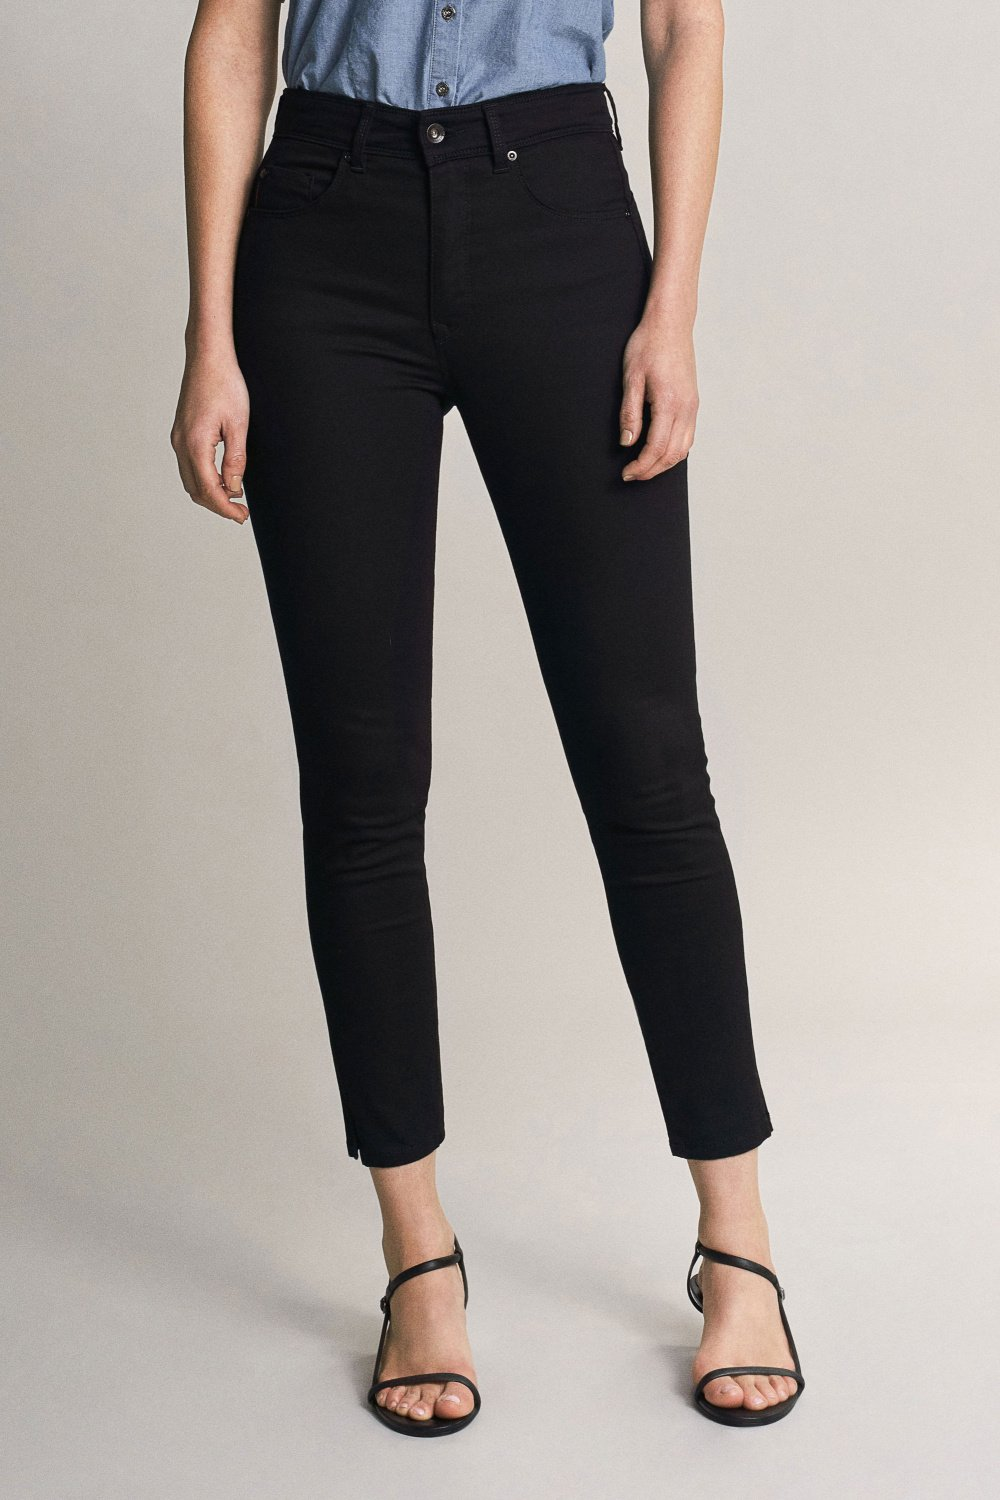 Salsa Secret Glamour Capri - Black